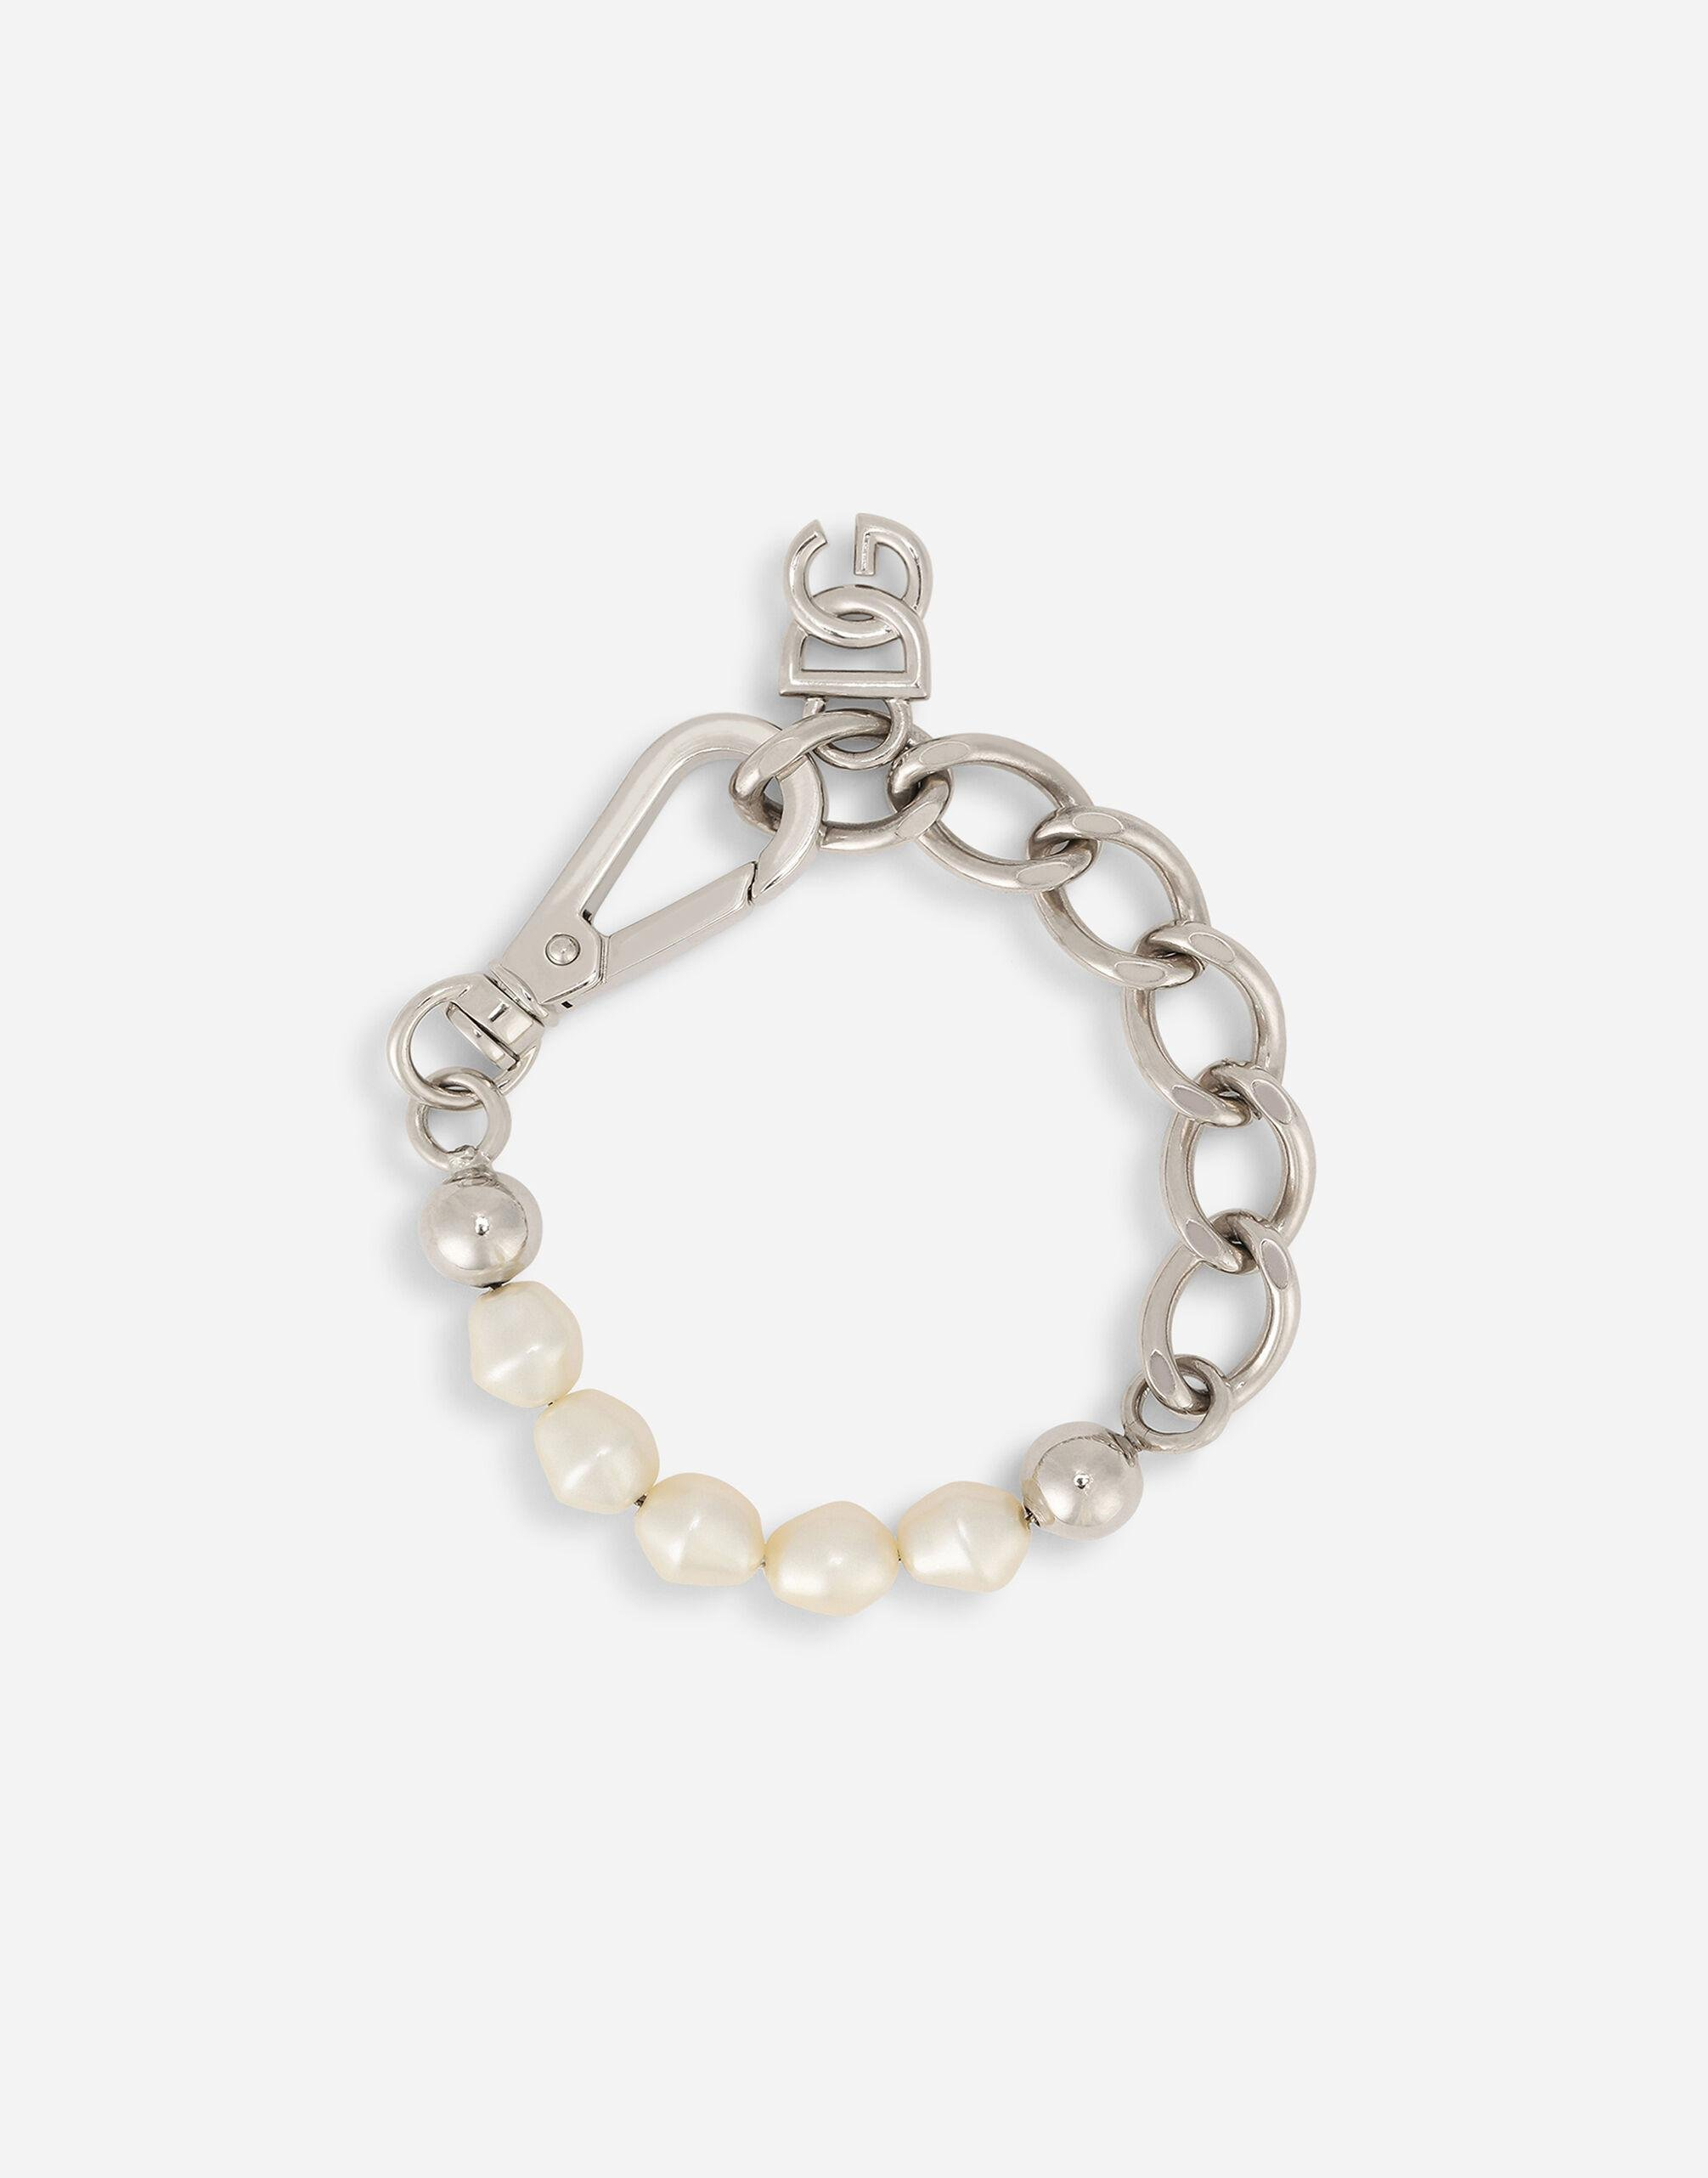 Link bracelet with rhinestones and pearl